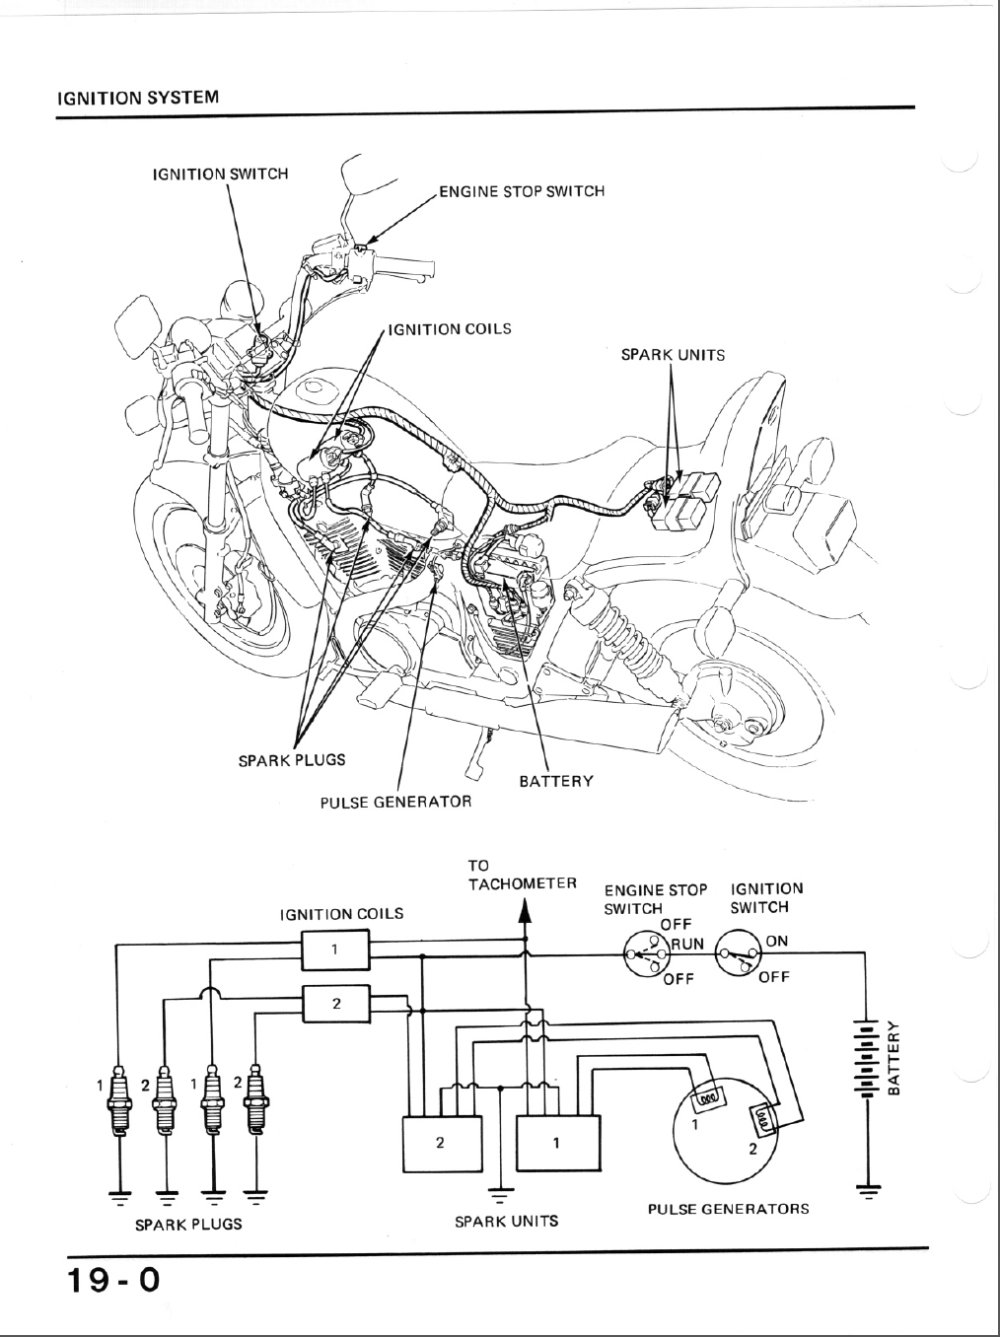 medium resolution of wiring diagram 2000 lincoln l wiring diagram databasewiring diagram honda cb750 wiring diagram 1983 honda magna